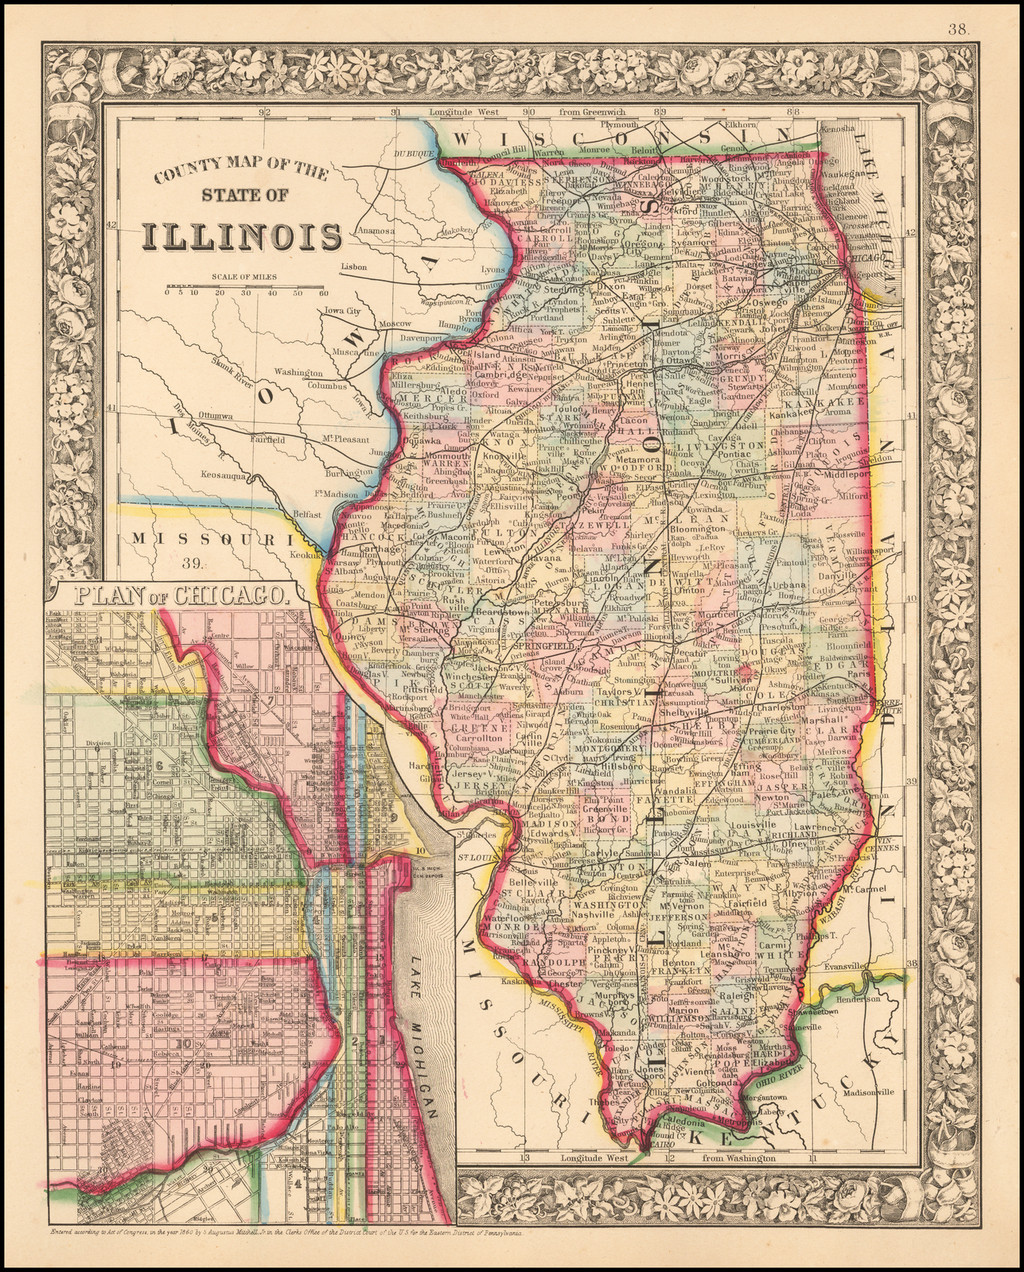 County Map of the State of Illinois By Samuel Augustus Mitchell Jr.